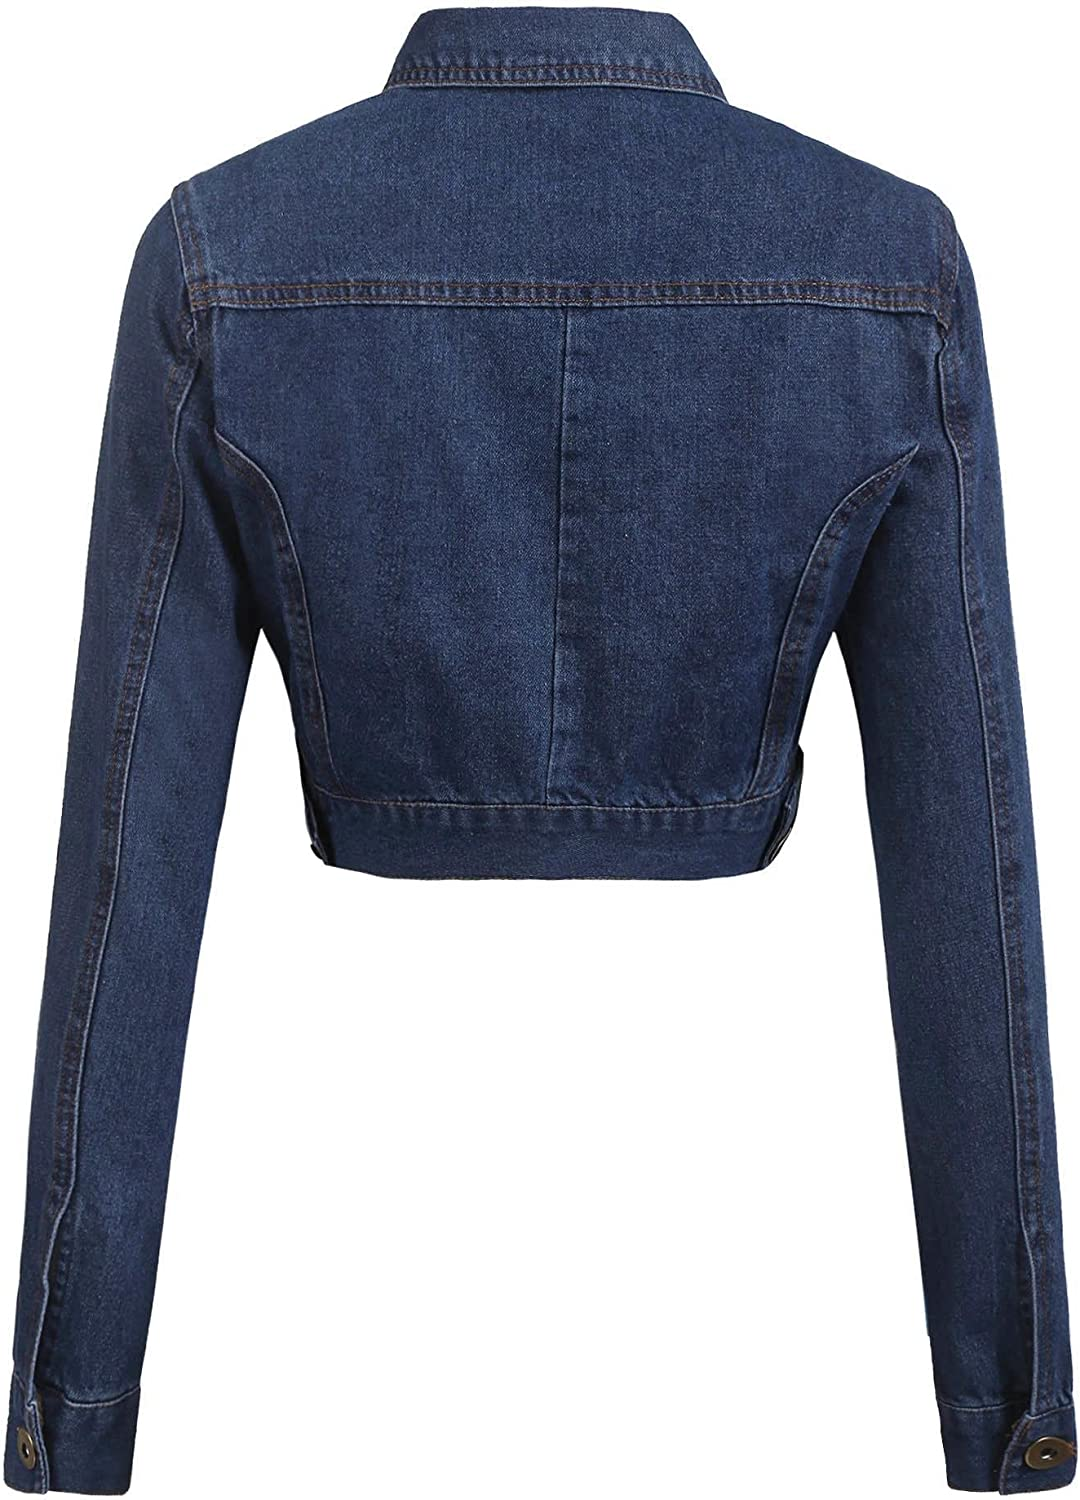 Grabsa Women/'s Button Down Long Sleeve Cropped Denim Jean Jacket with Pockets